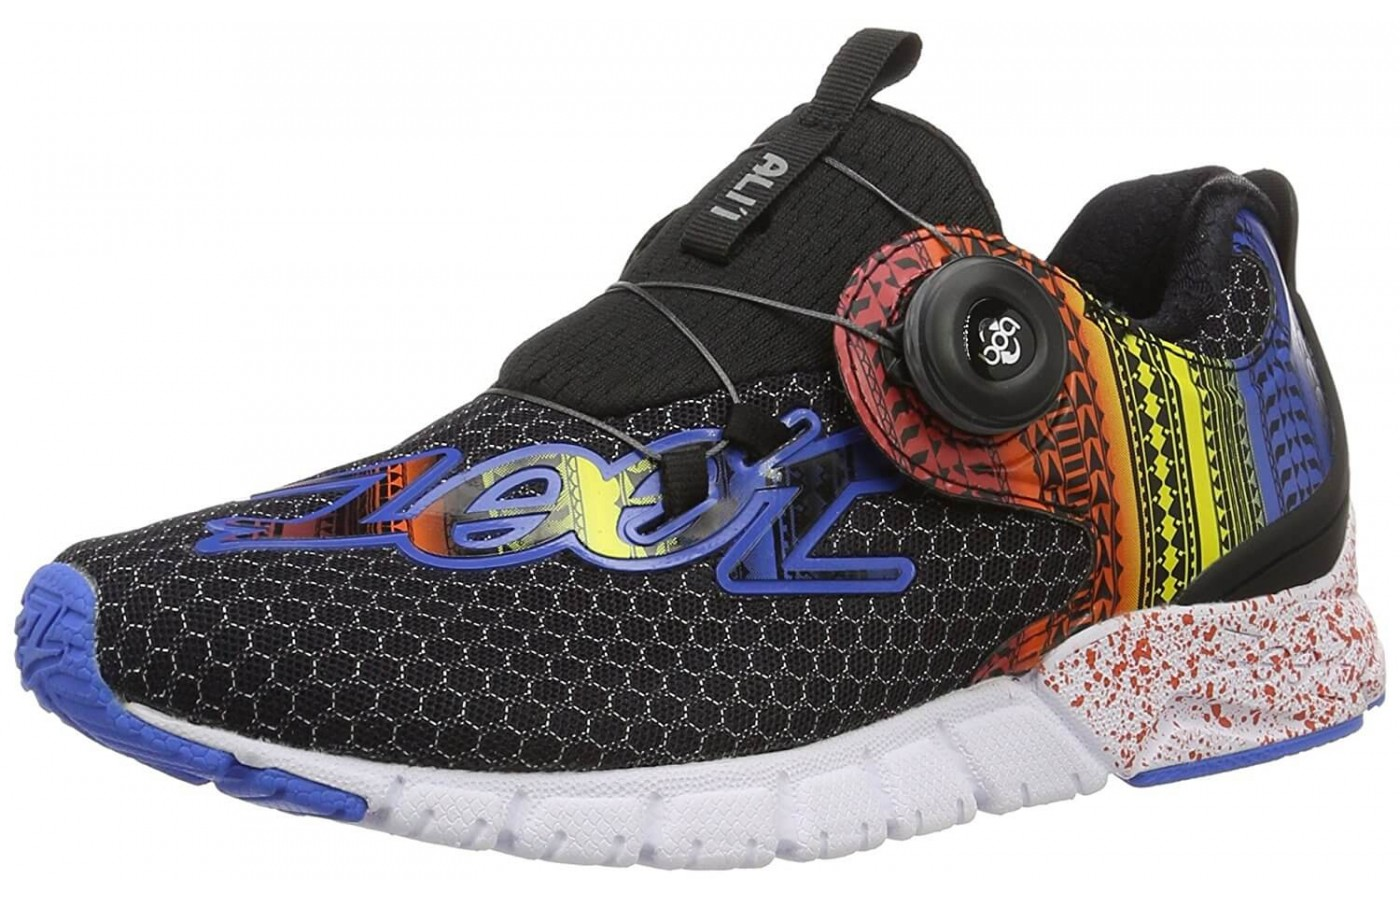 The Zoot Ali'i's midsole also contains ZVA cushioning